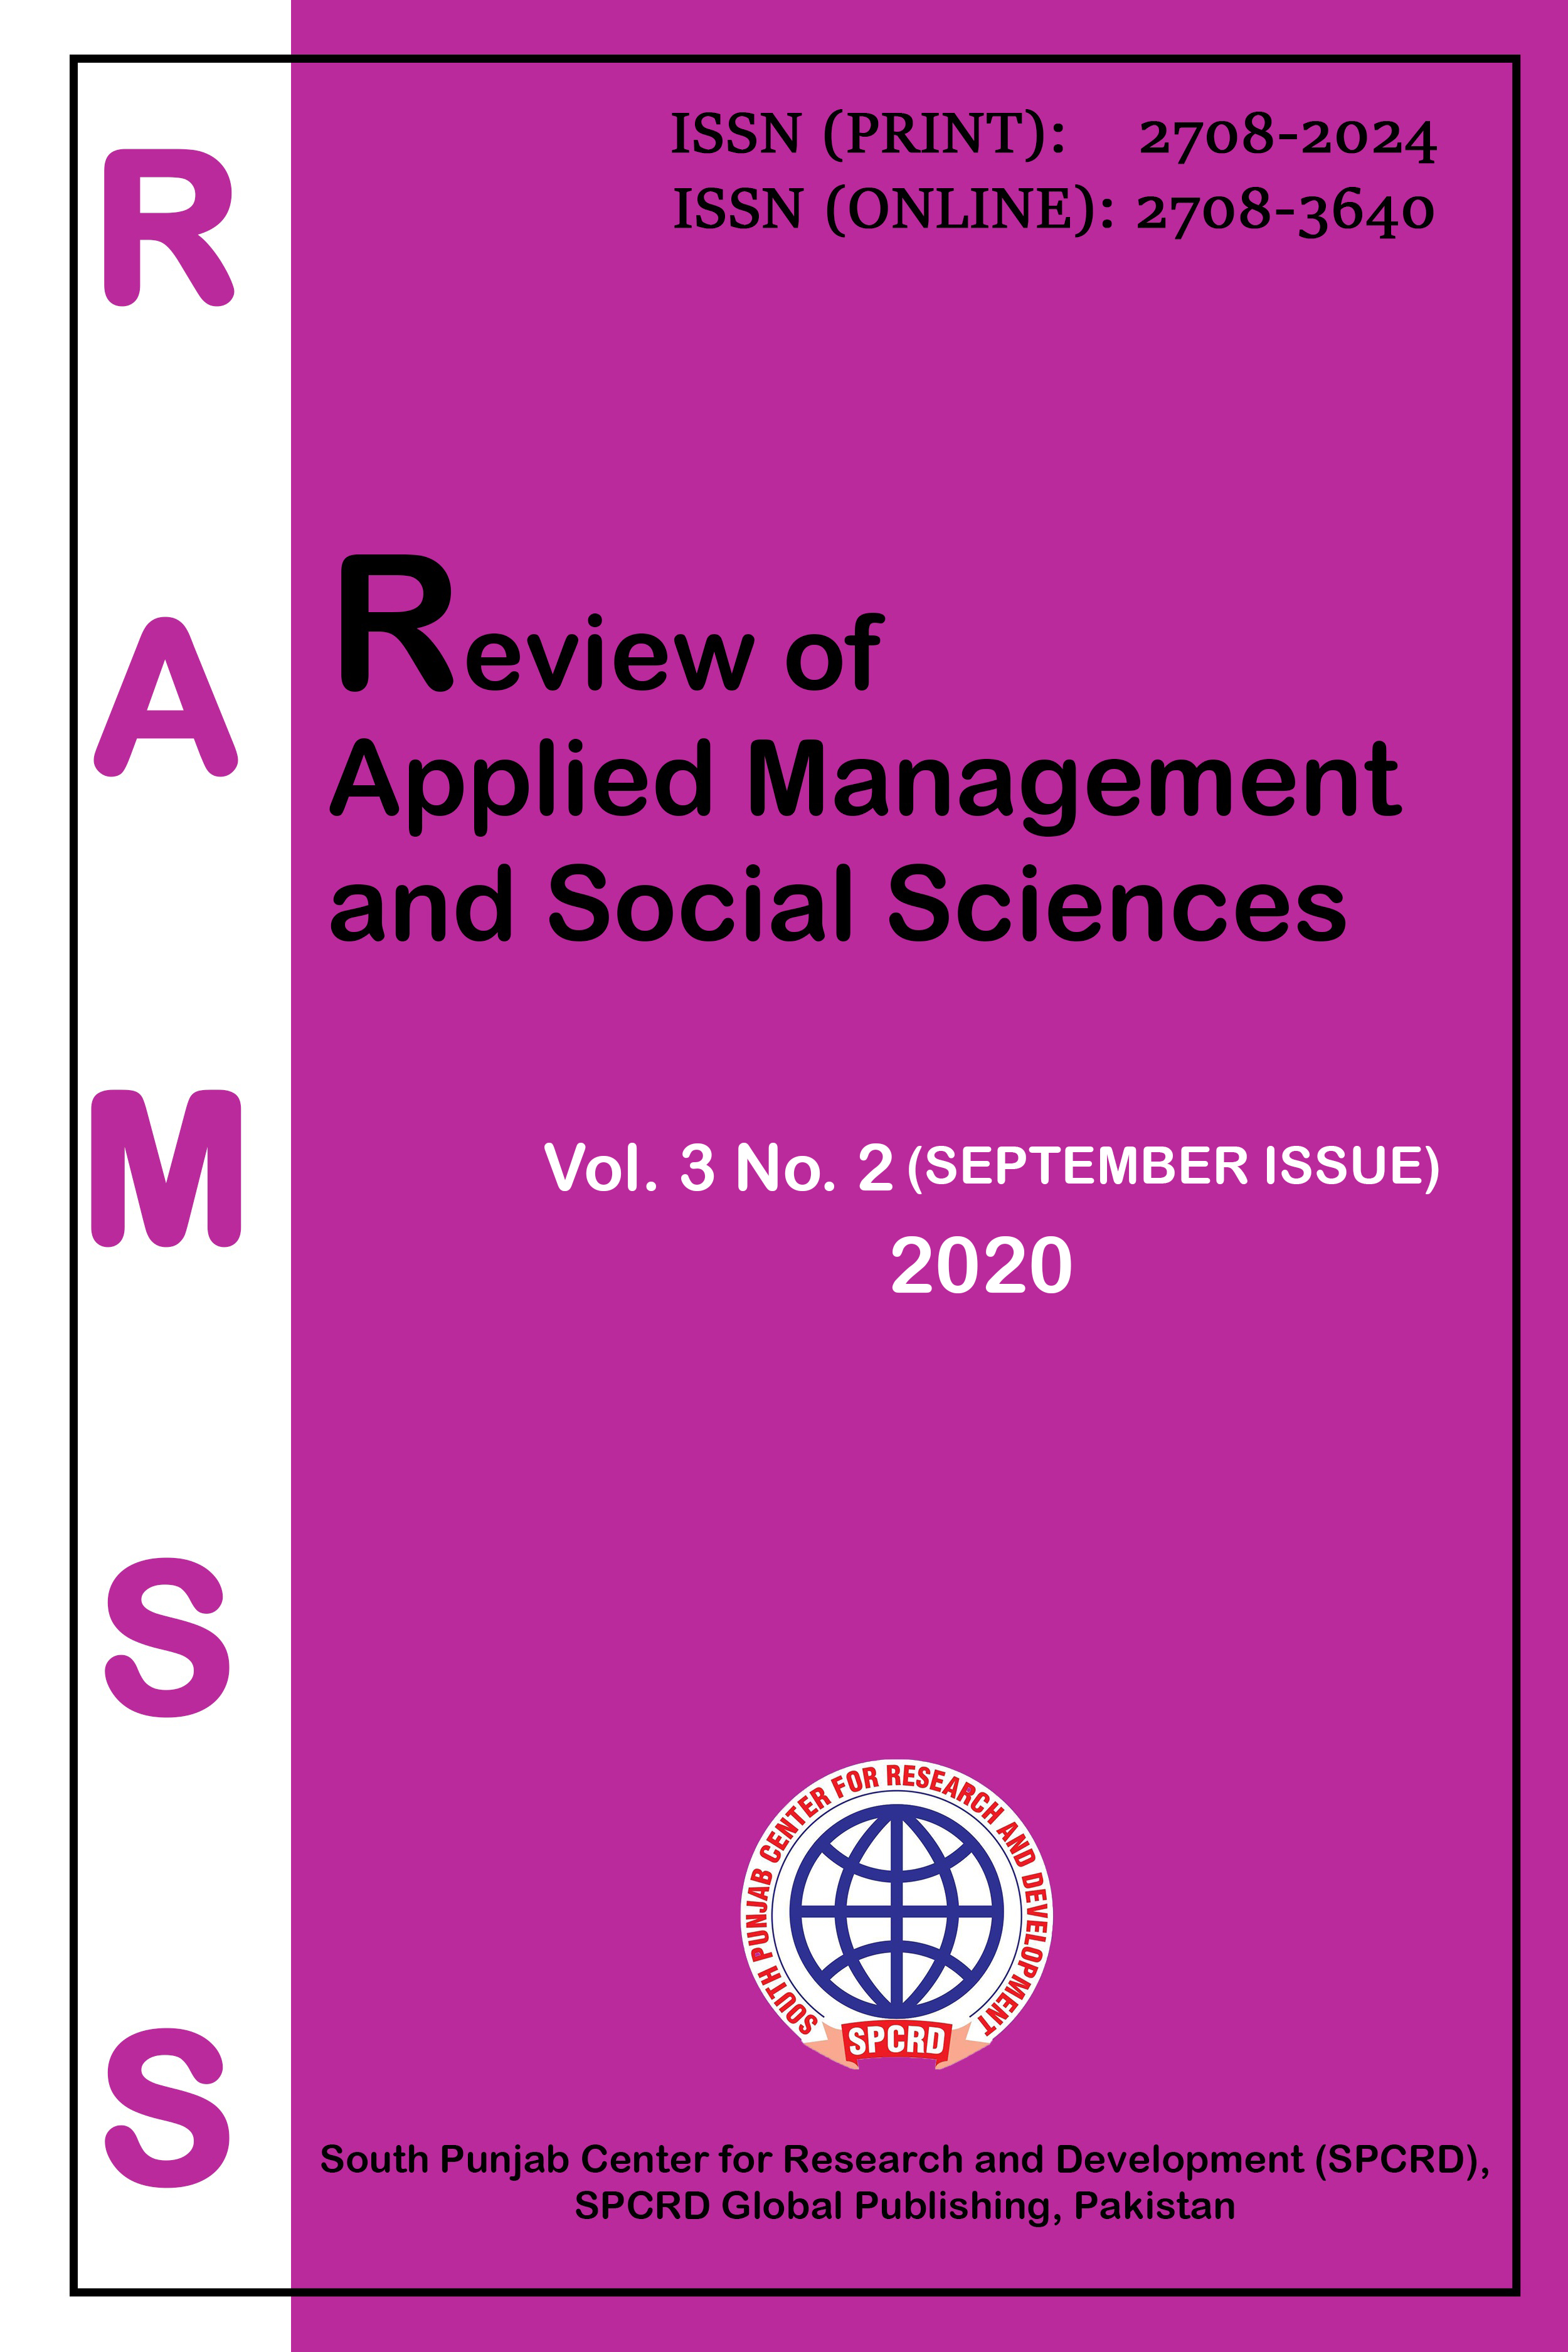 View Vol. 3 No. 2, September (2020): Review of Applied Management and Social Sciences